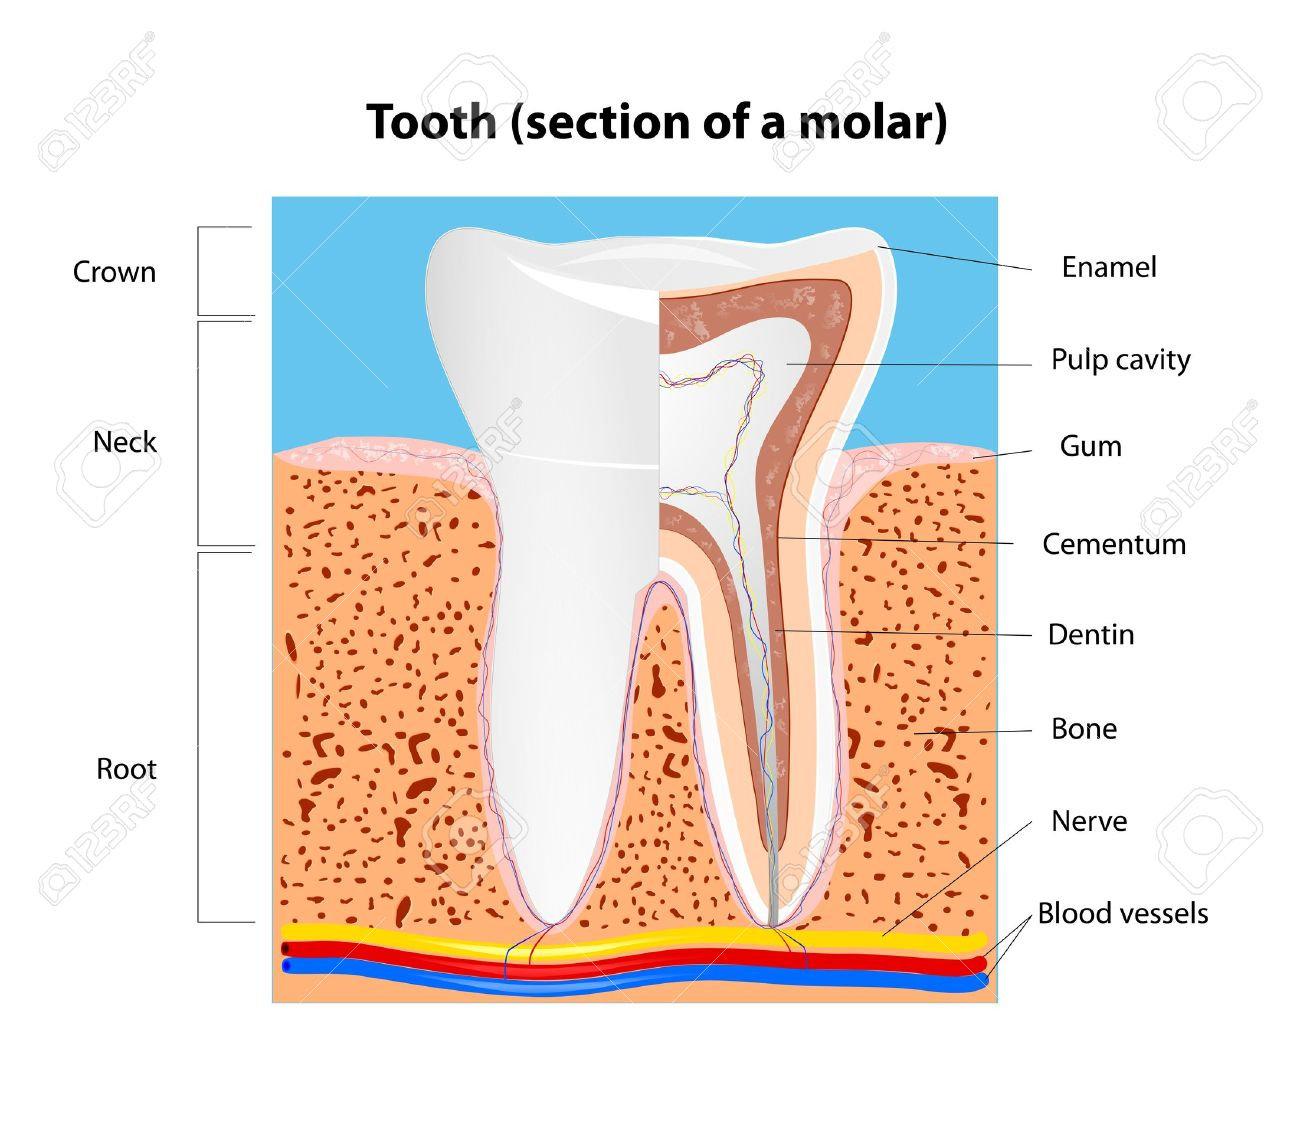 Tooth Anatomy Section Of A Human Molar Royalty Free Cliparts ...